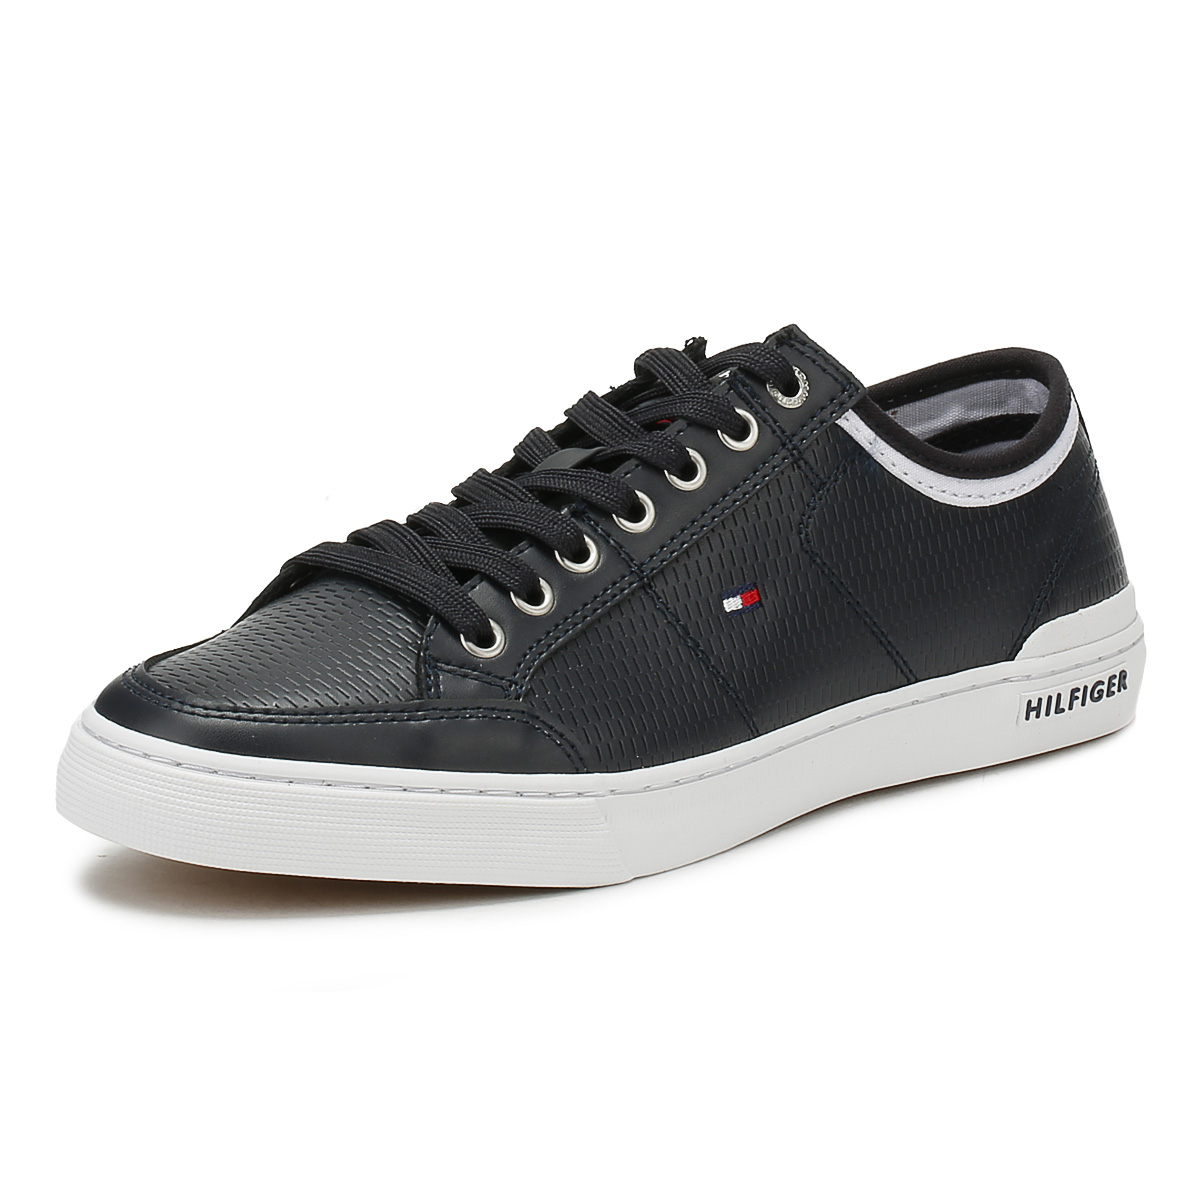 Tommy Hilfiger Mens Trainers Midnight Black Corporate Leather Lace Up Up Lace Shoes 6edae1